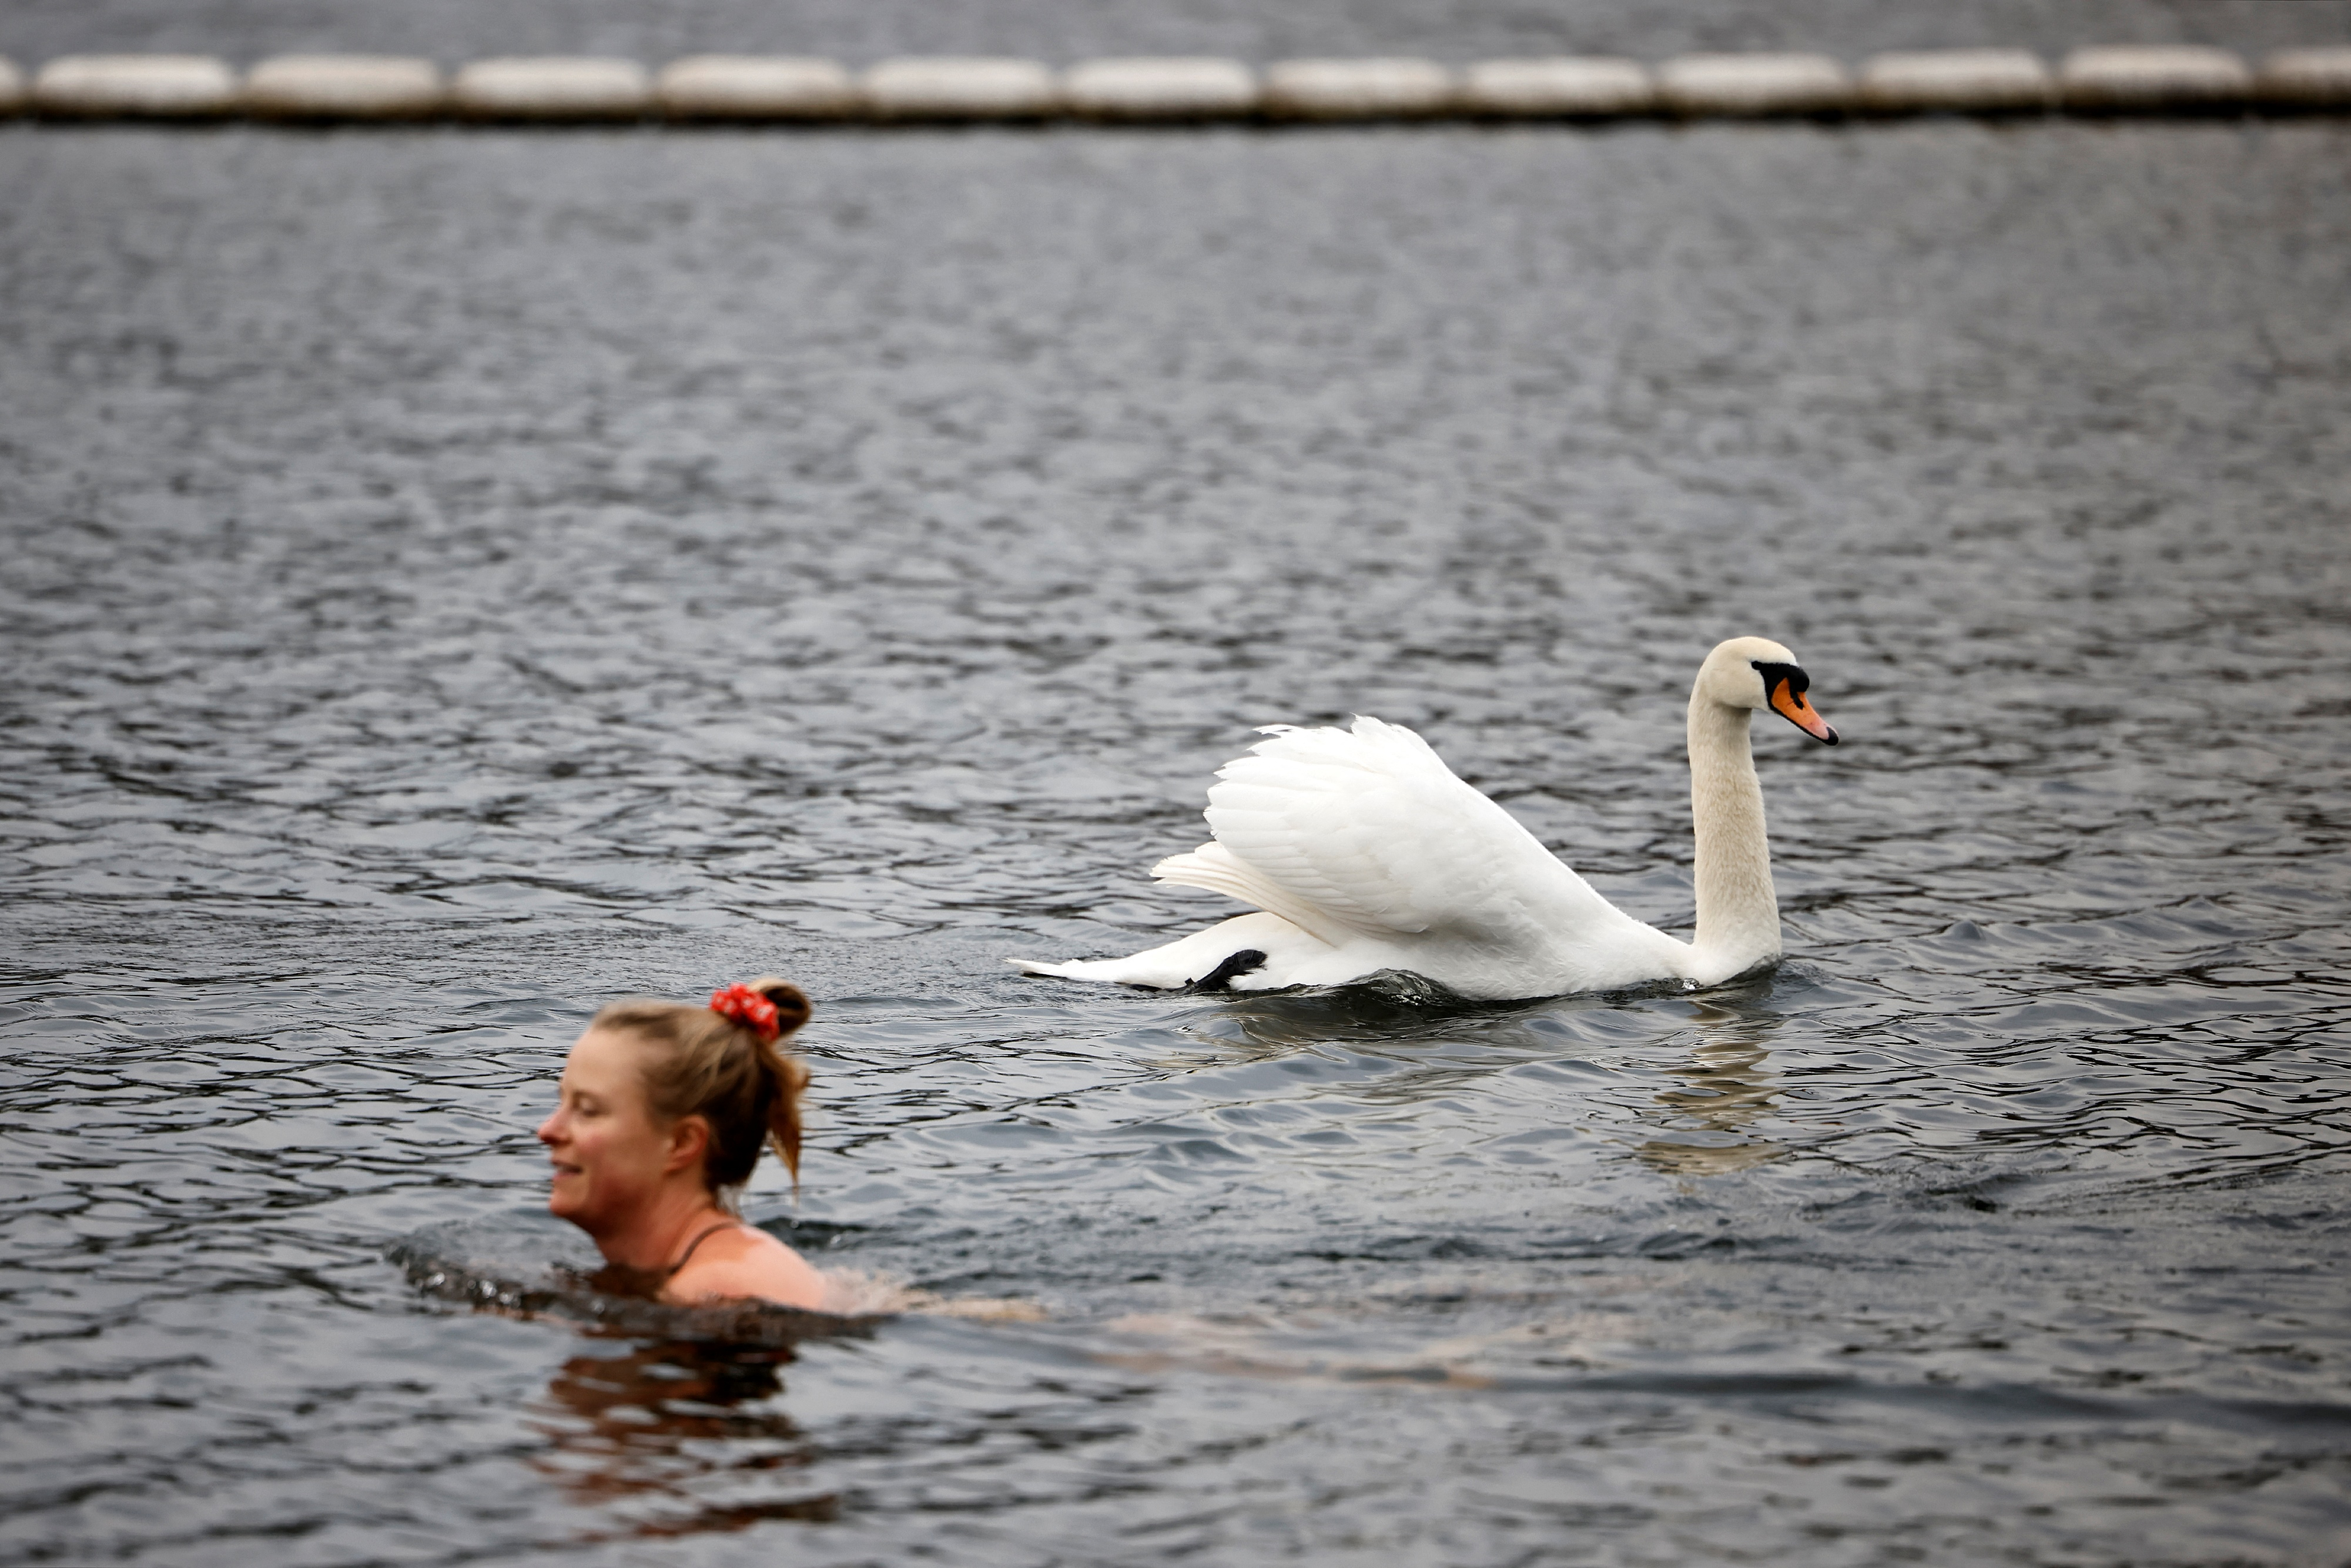 <p>A bather swims past a swan in the Serpentine Lido in Hyde Park, London as England's third Covid-19 lockdown restrictions ease, allowing outdoor sports facilities to open on March 29, 2021. - England began to further ease its coronavirus lockdown on Monday, spurred by rapid vaccinations, but governments in the rest of Europe struggled to contain Covid-19 surges. (Photo by Tolga Akmen / AFP) (Photo by TOLGA AKMEN/AFP via Getty Images)</p>